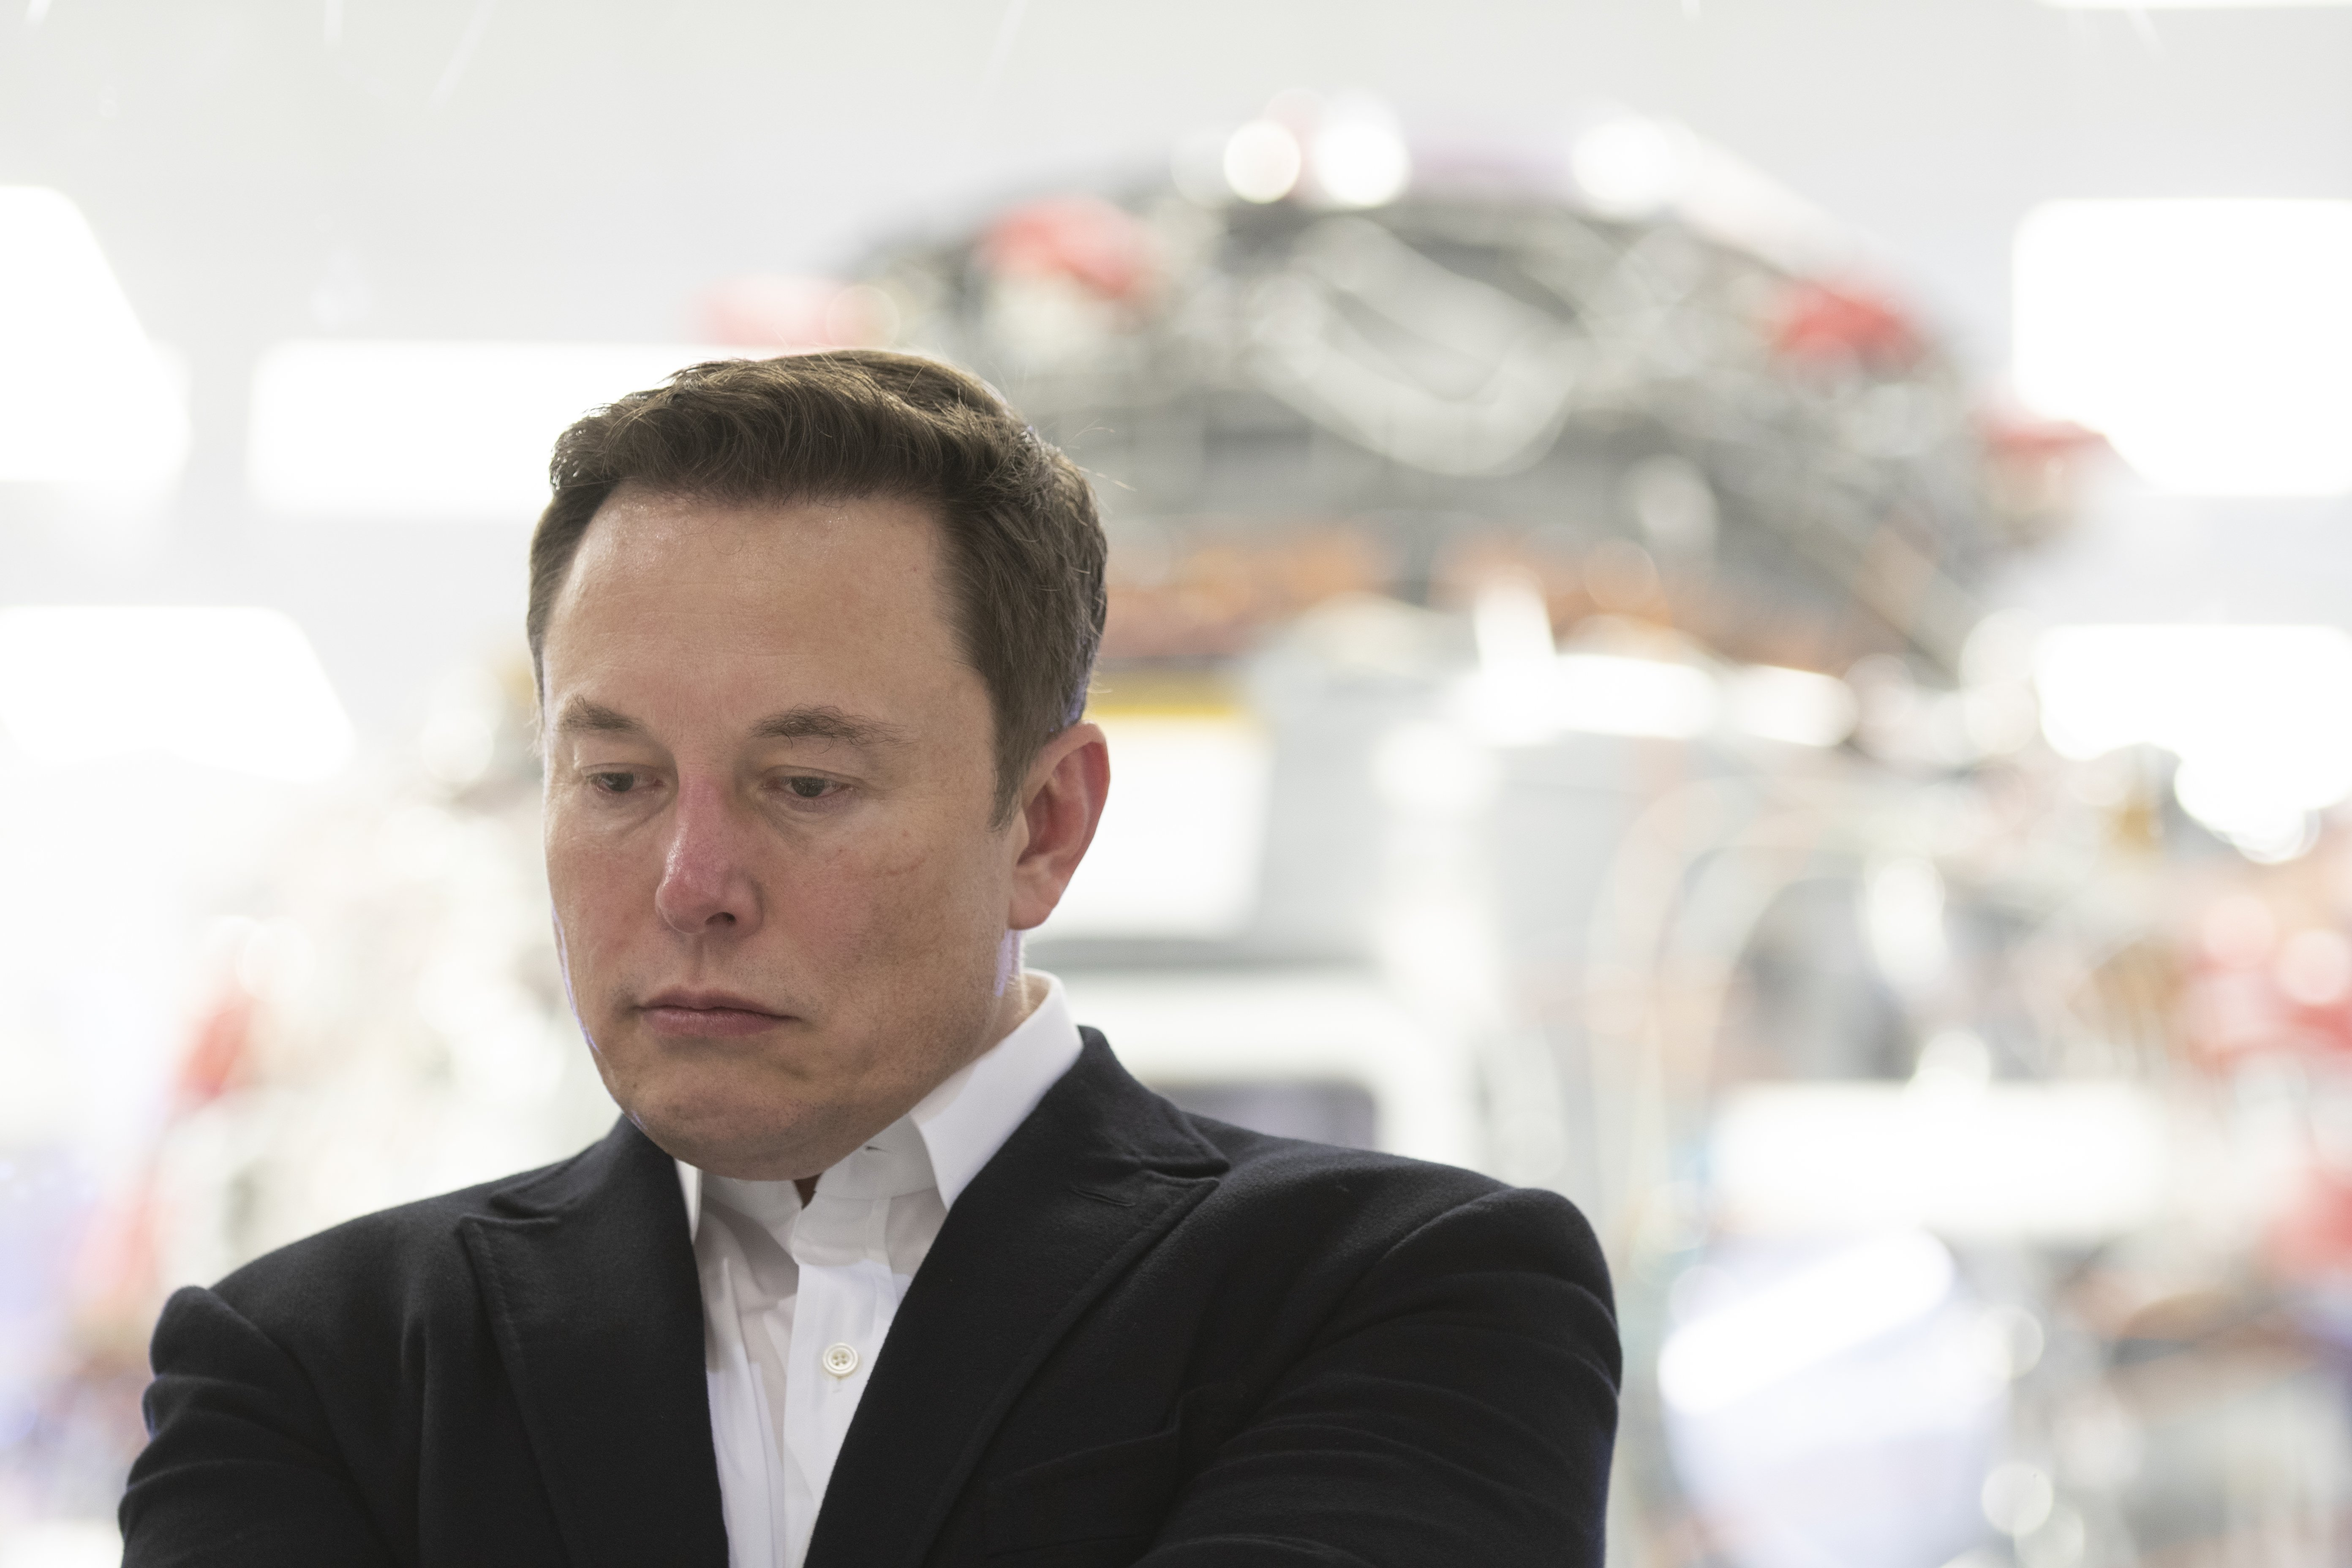 Elon Musk pictured at SpaceX Headquarters, 2019, Hawthorne, California.   Photo: Getty Images